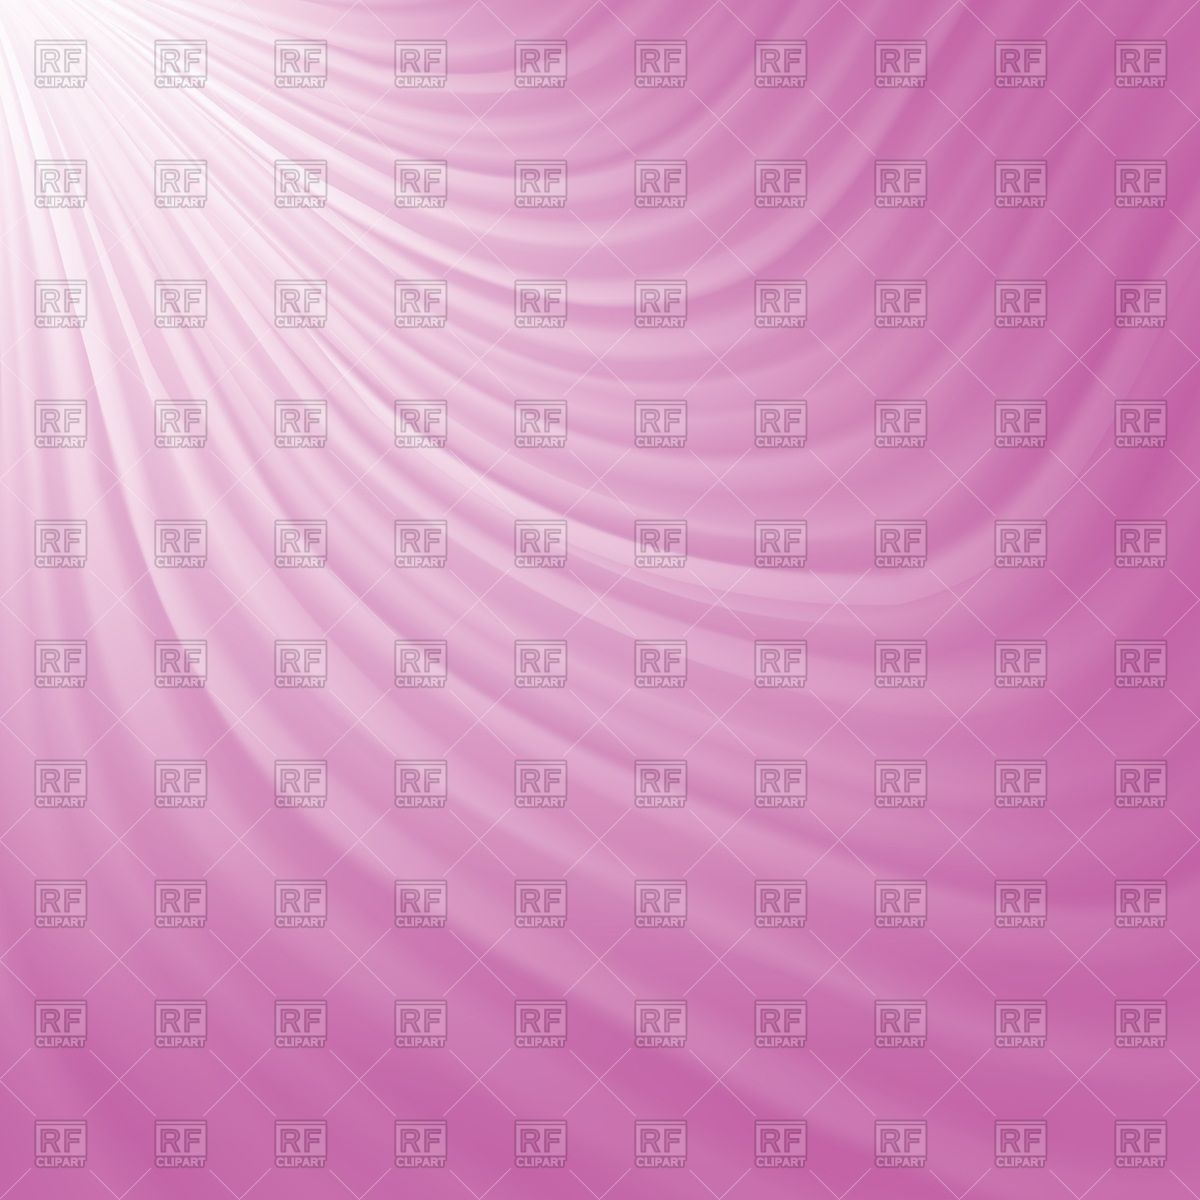 Pink textile windings Vector Image #39489.